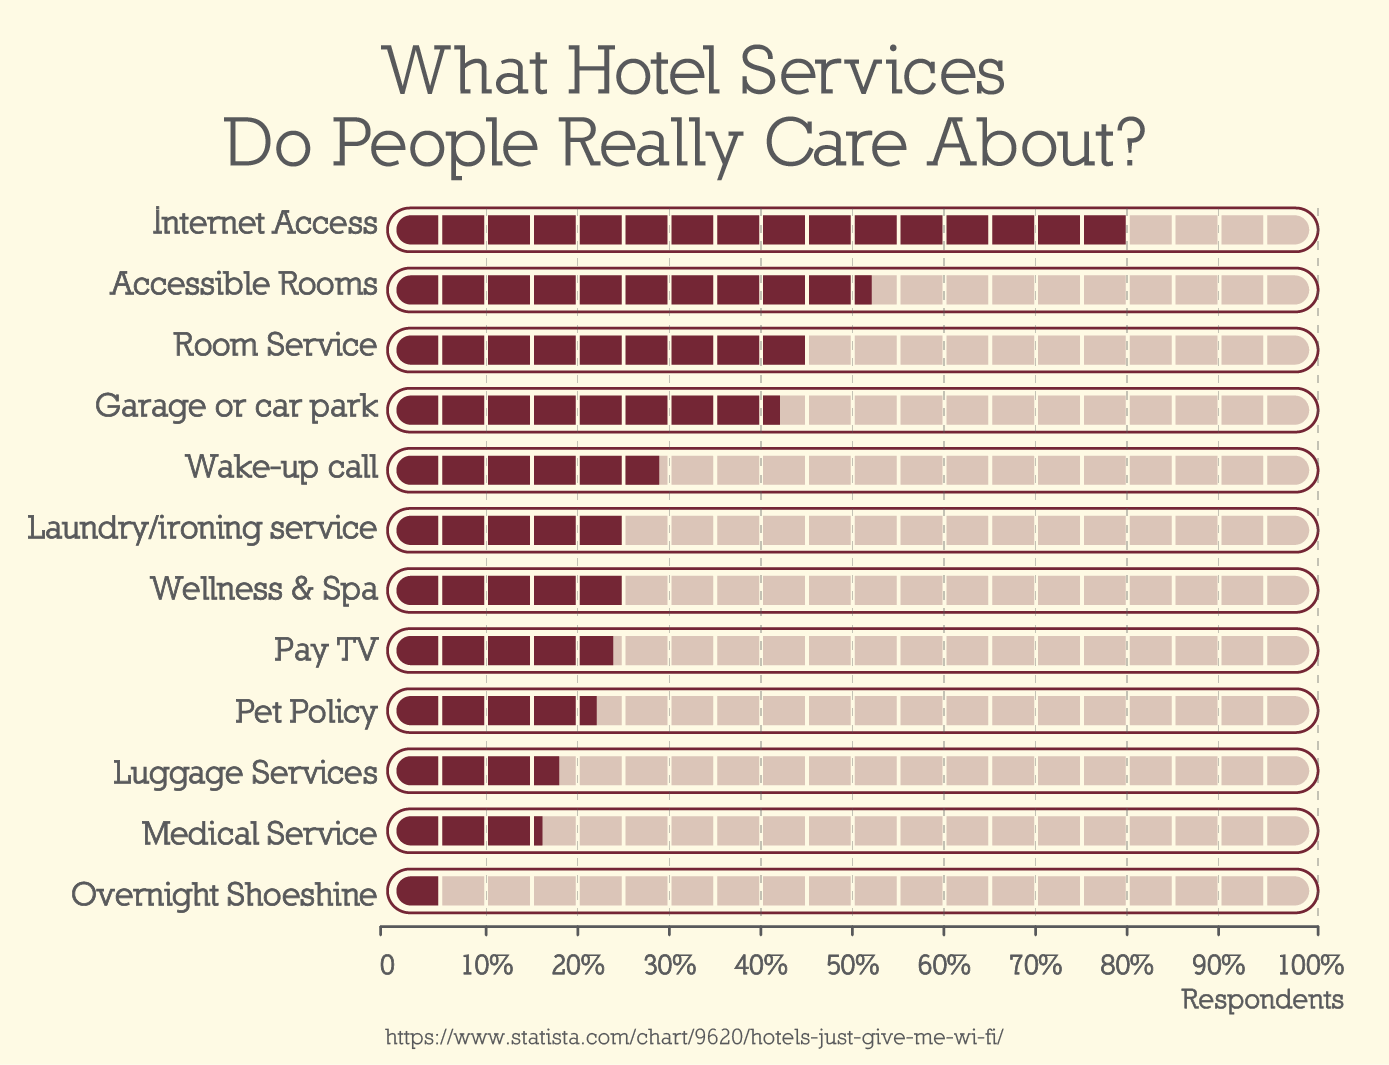 What hotel services do you care about?